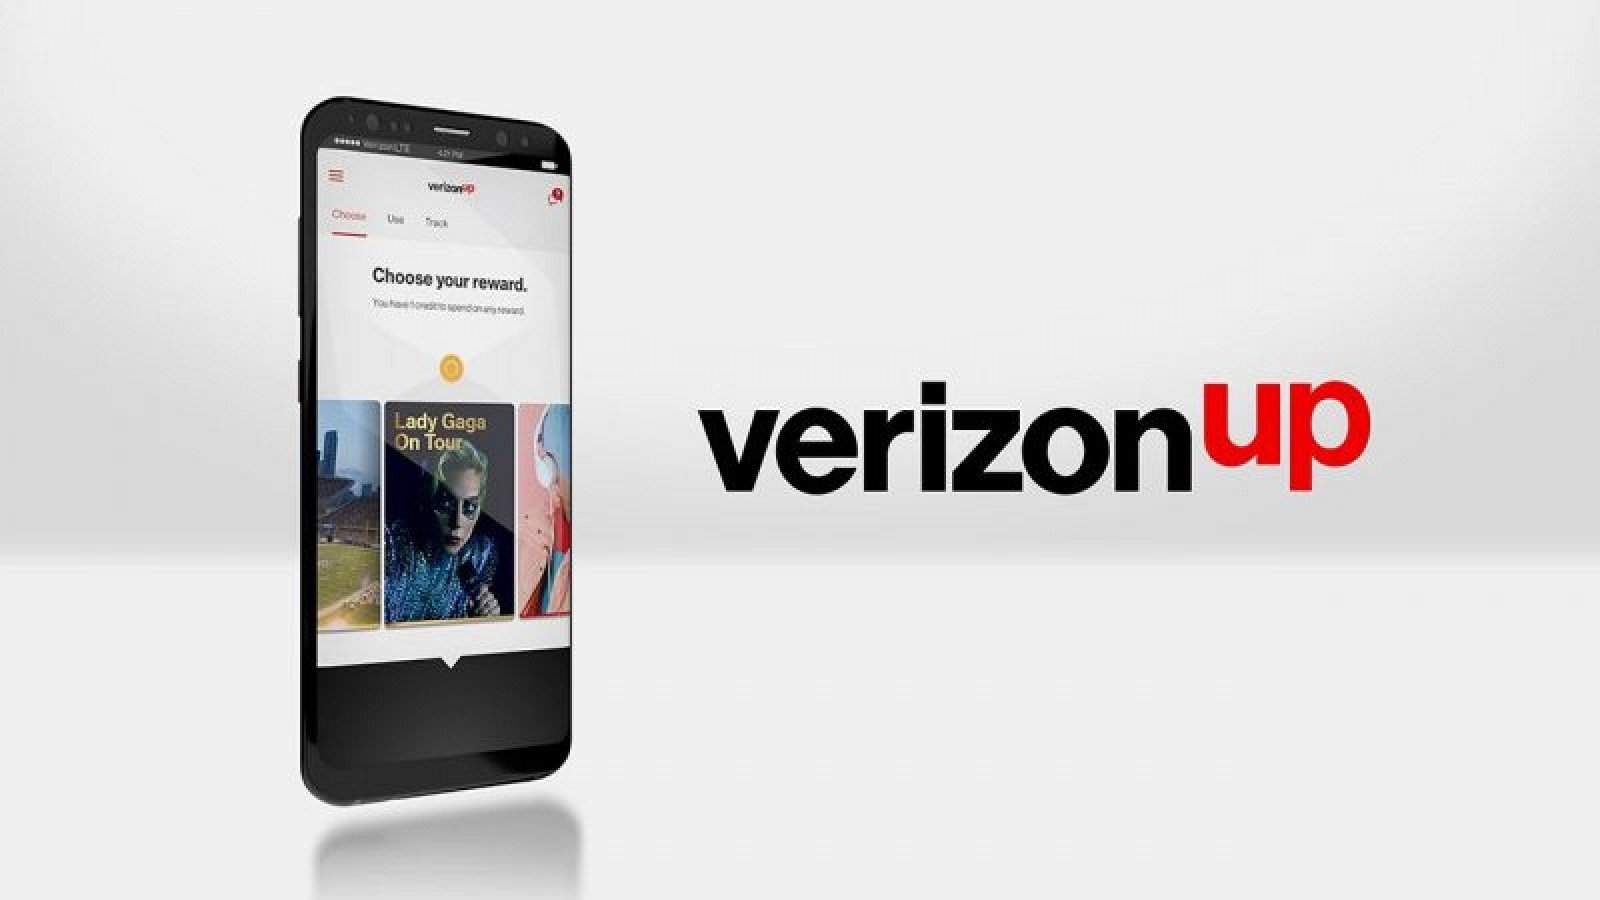 verizon email on iphone verizon introduces new up rewards program with perks 9930